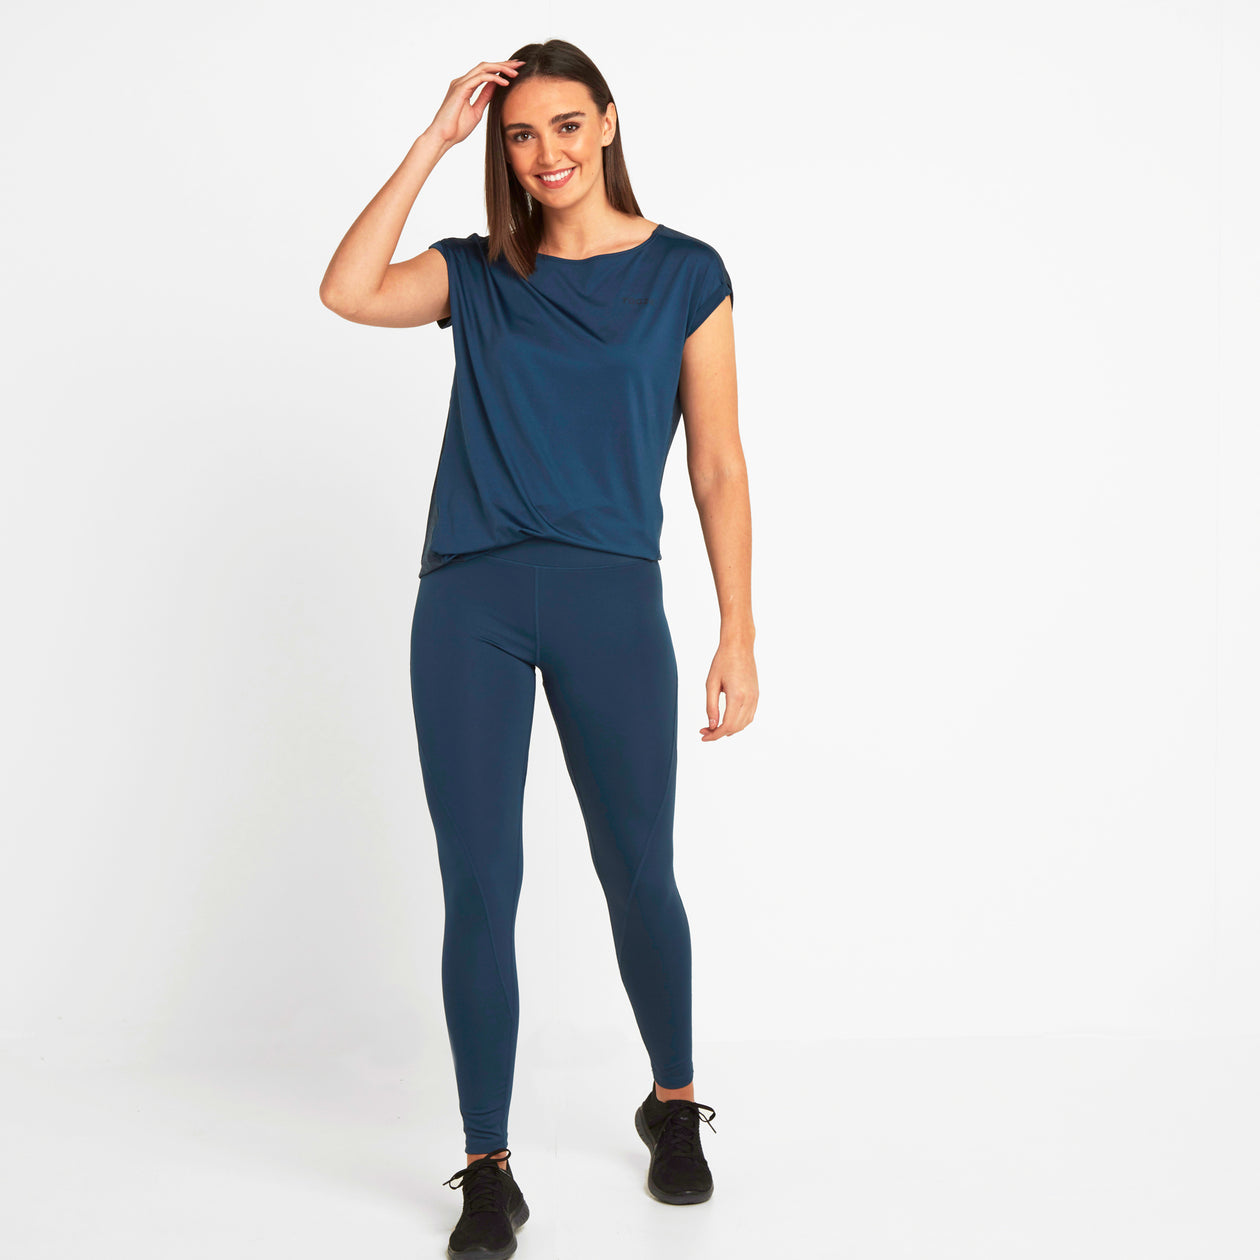 Balby Womens Leggings - Atlantic Blue image 4